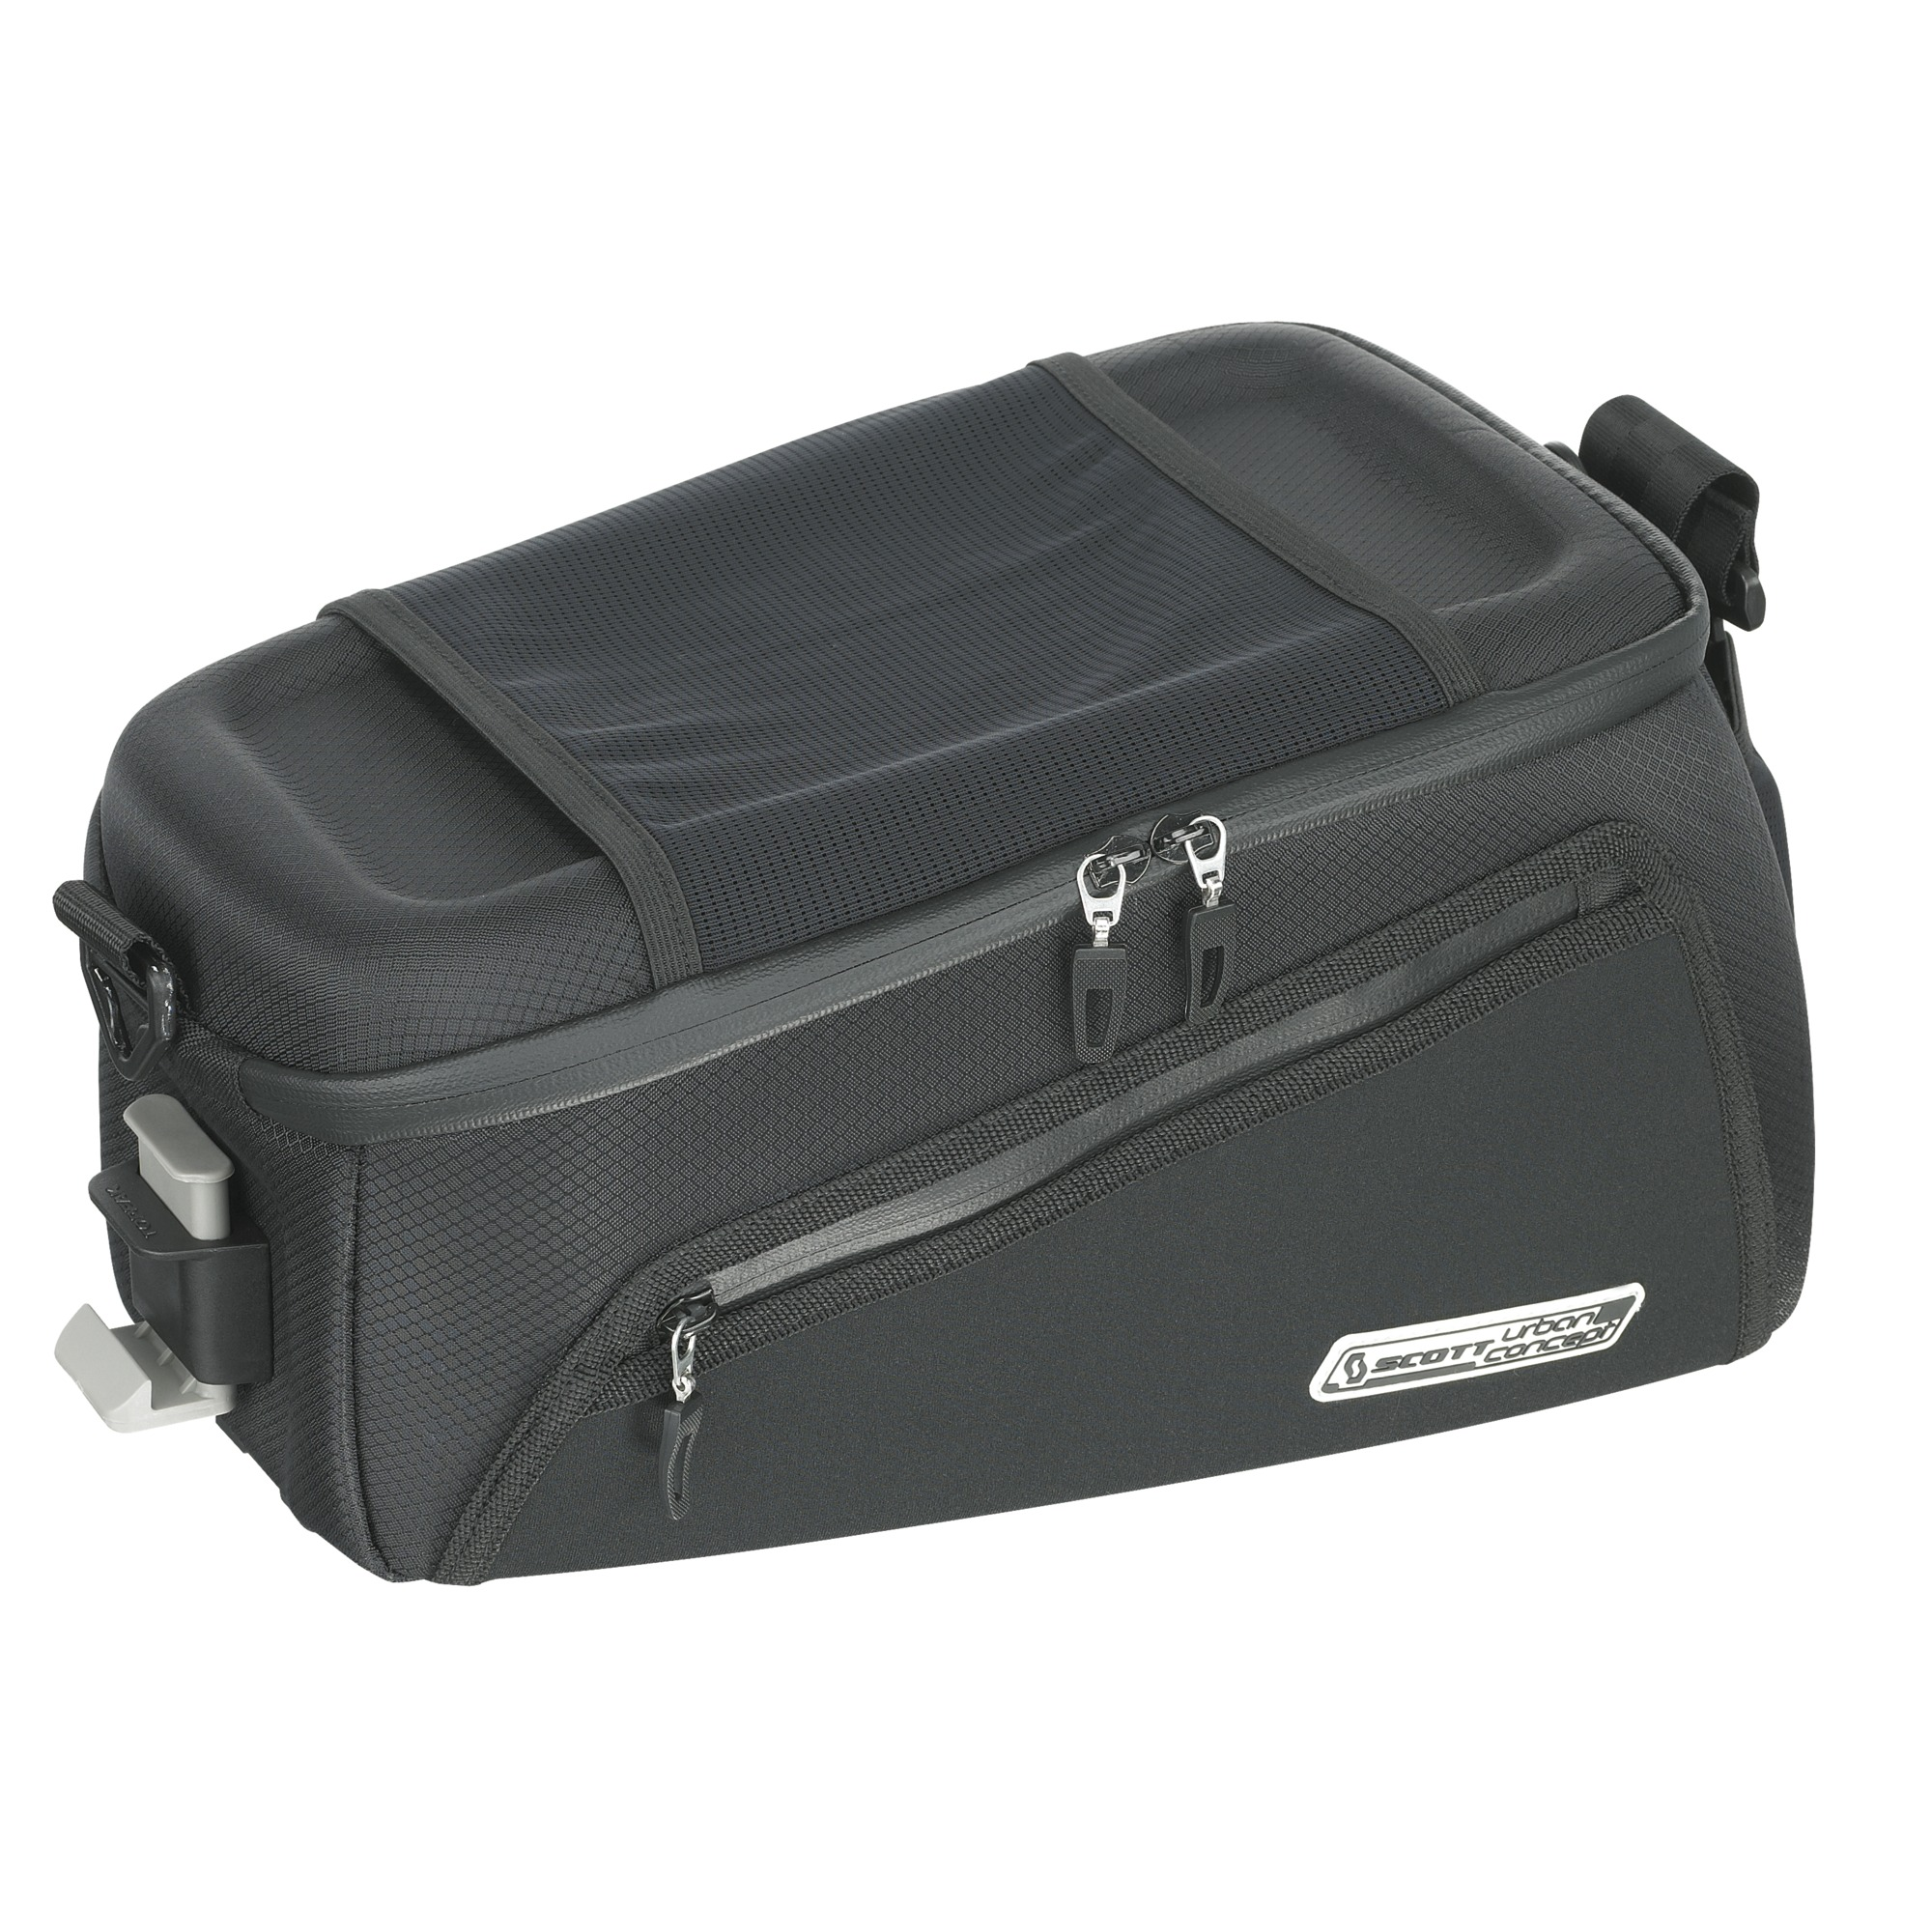 SCOTT Concept MTX Urban Trunk Bag